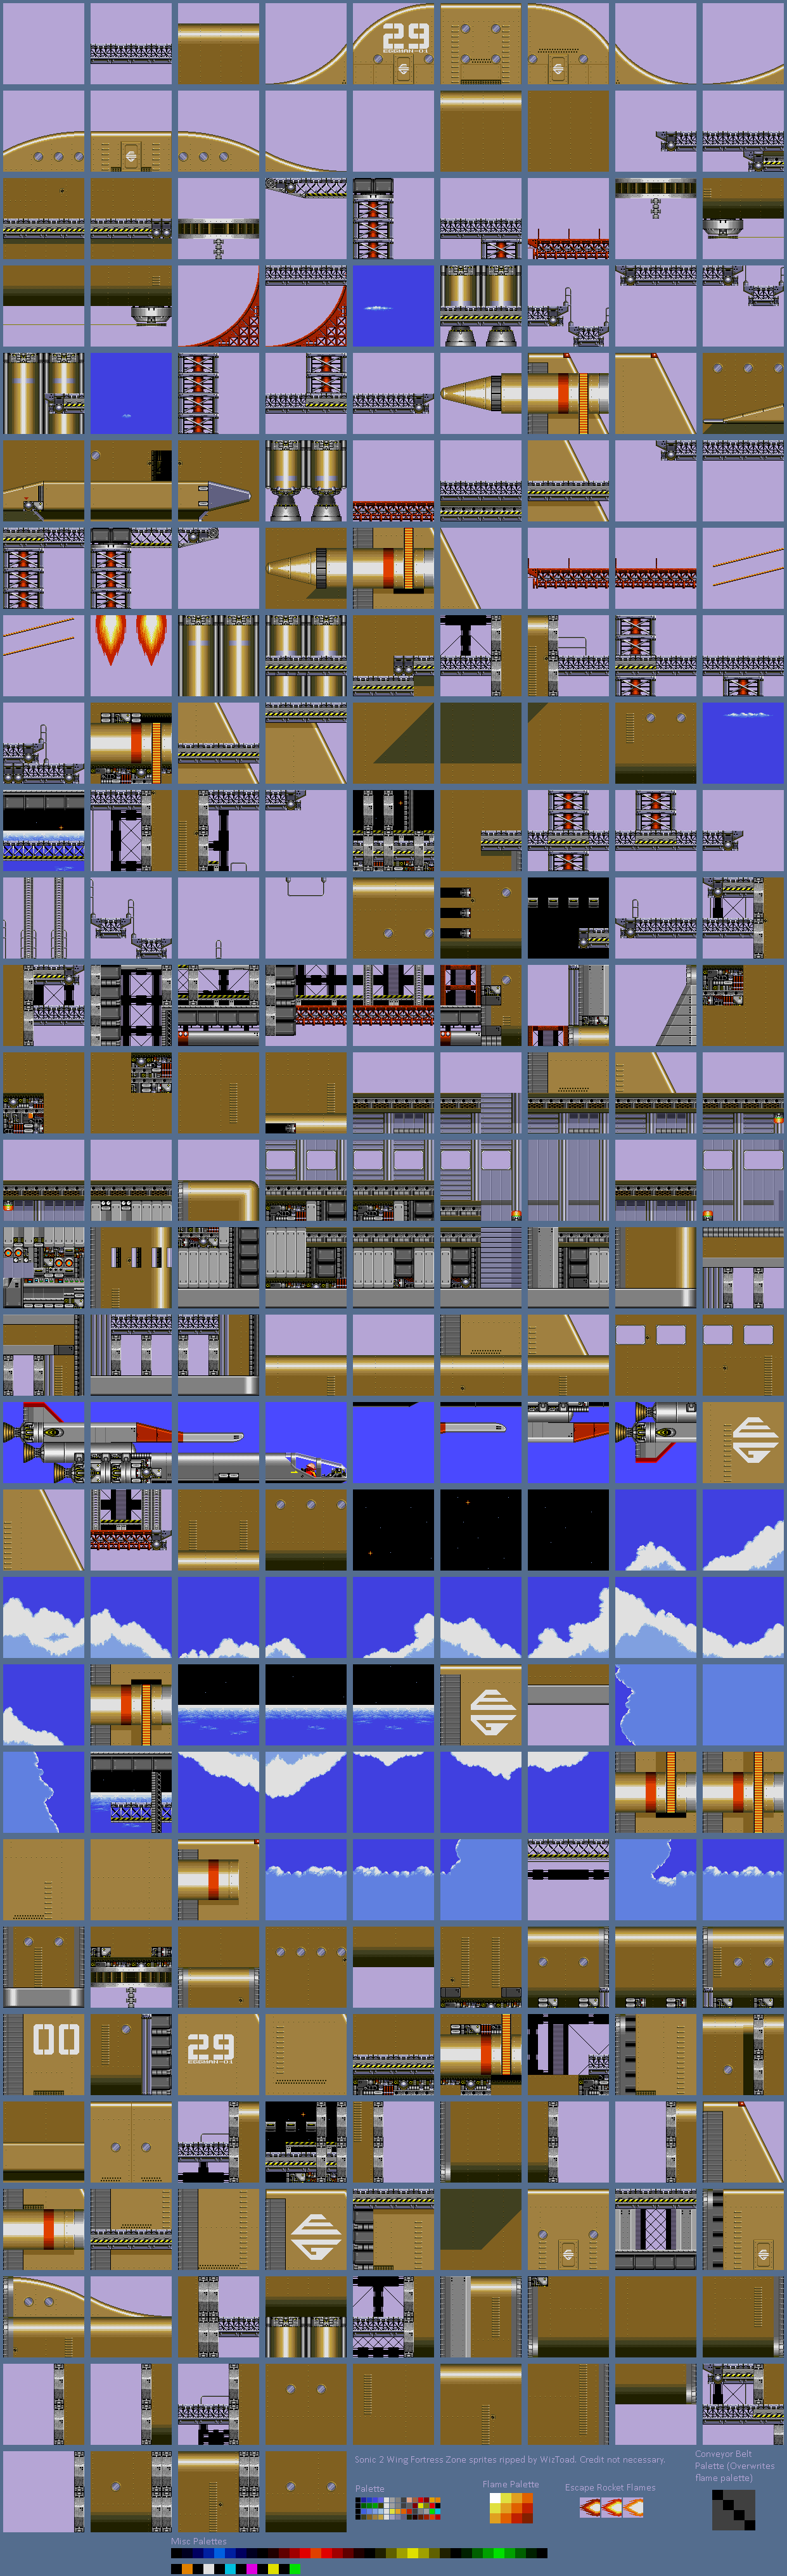 Sonic the Hedgehog 2 - Wing Fortress Zone